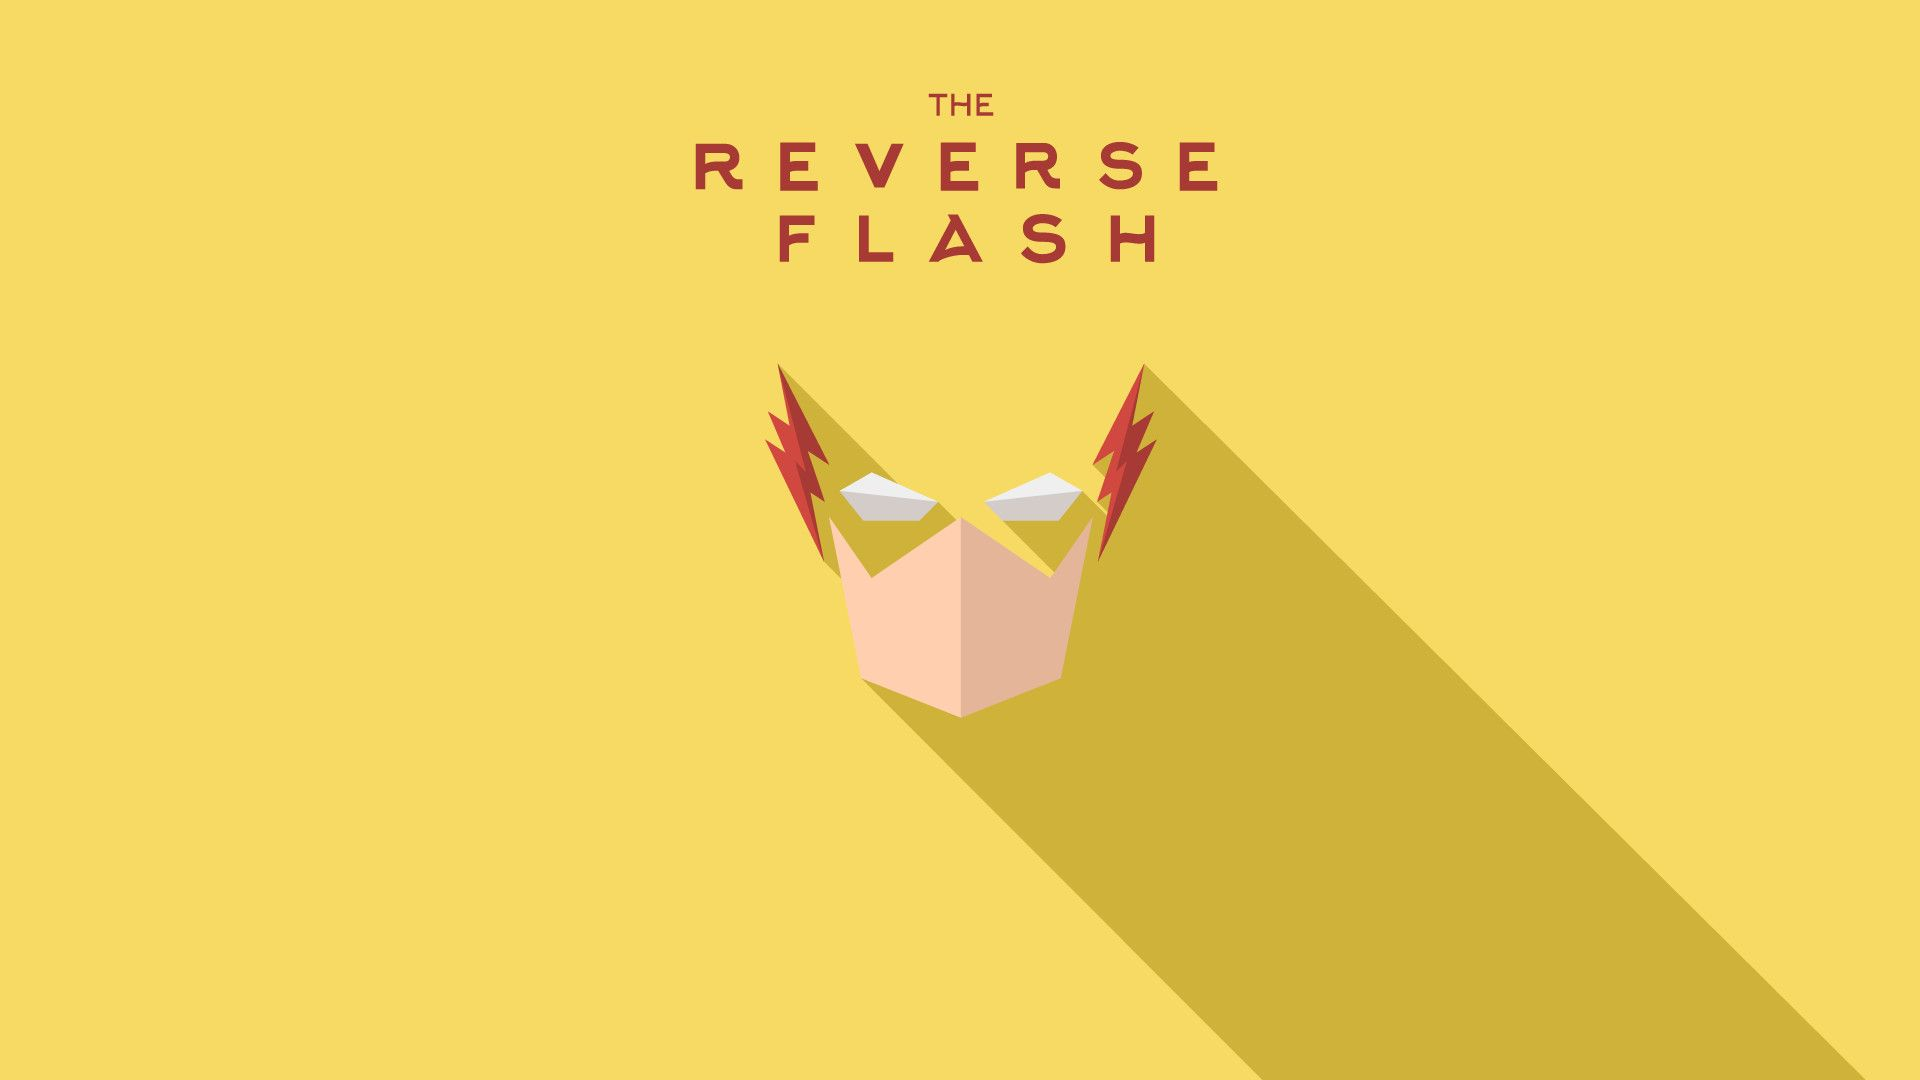 1080x1920 Daredevil Minimalism Iphone 7 6s 6 Plus Pixel: 62 Best Free Flash And Reverse Flash Wallpapers